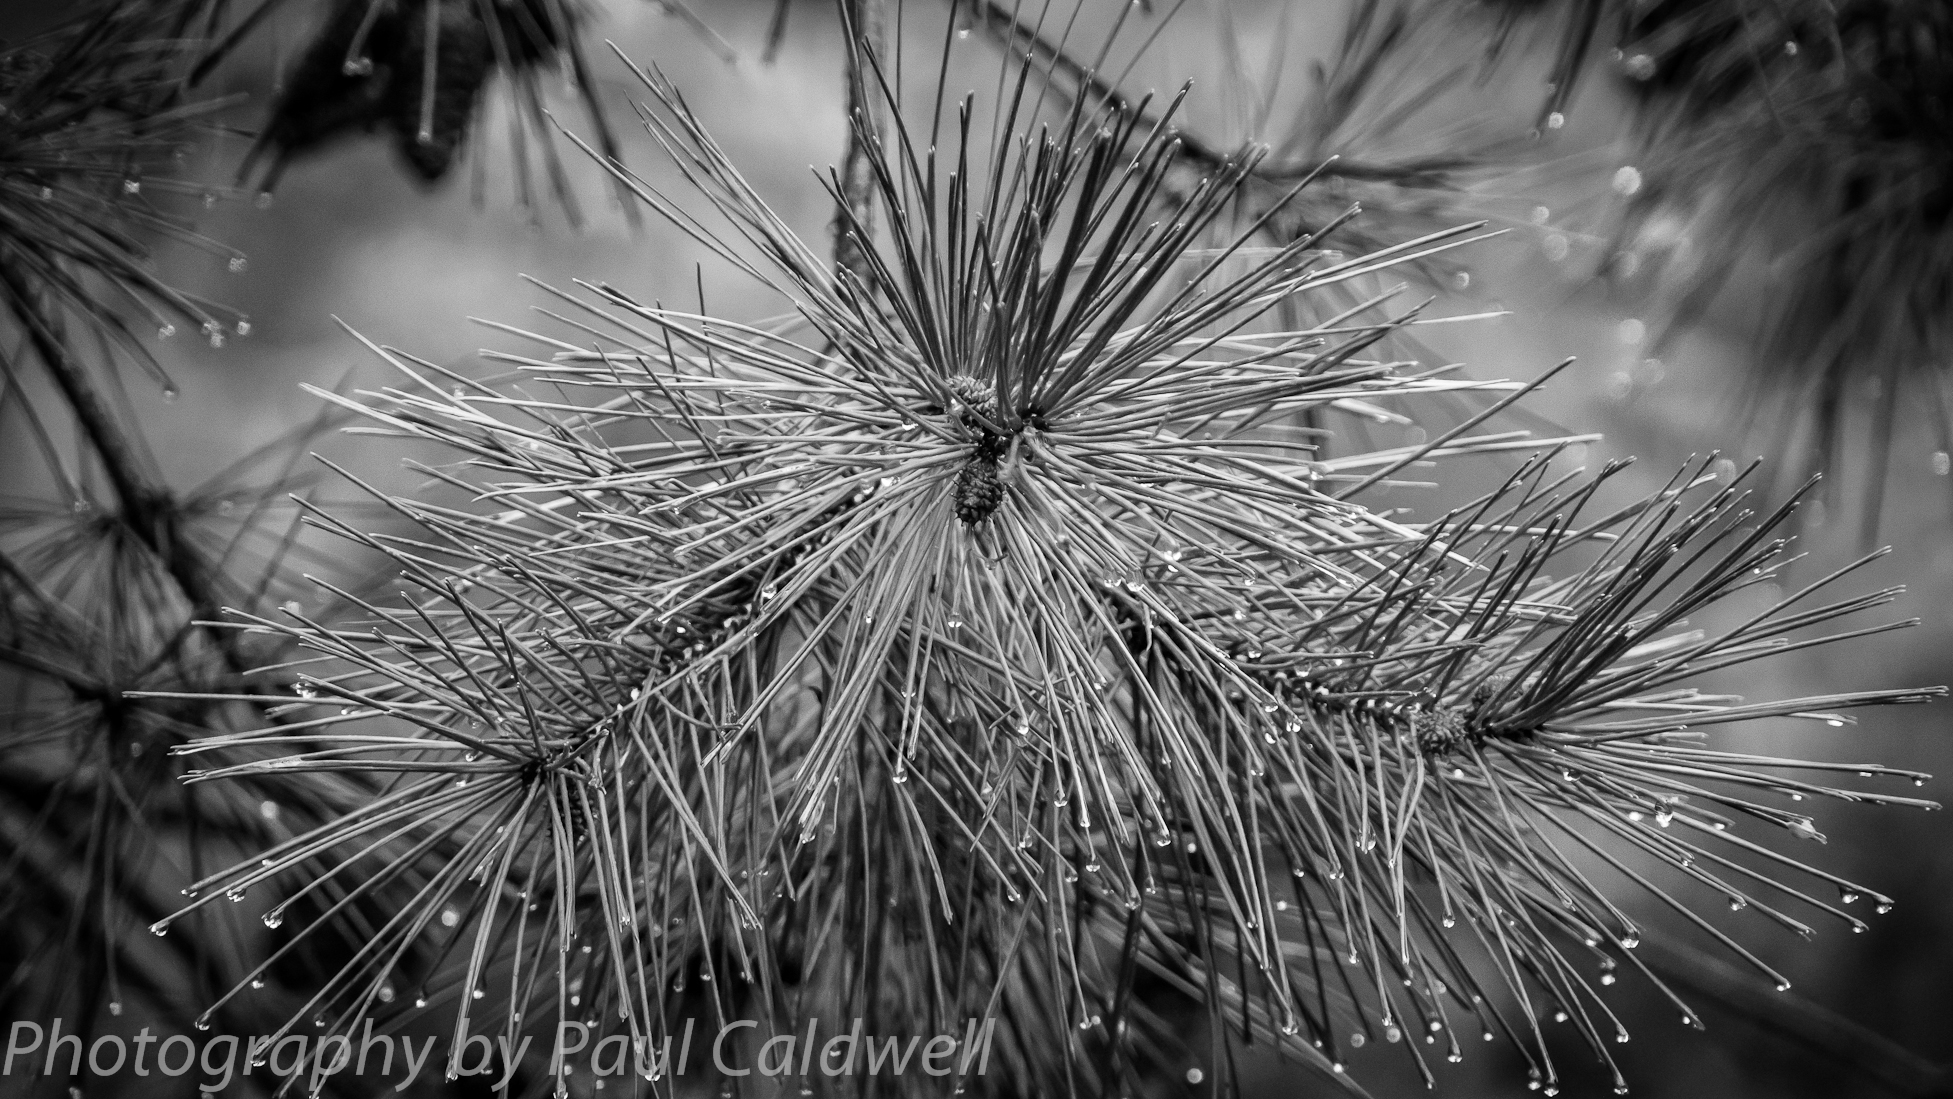 Pine needles after the rain